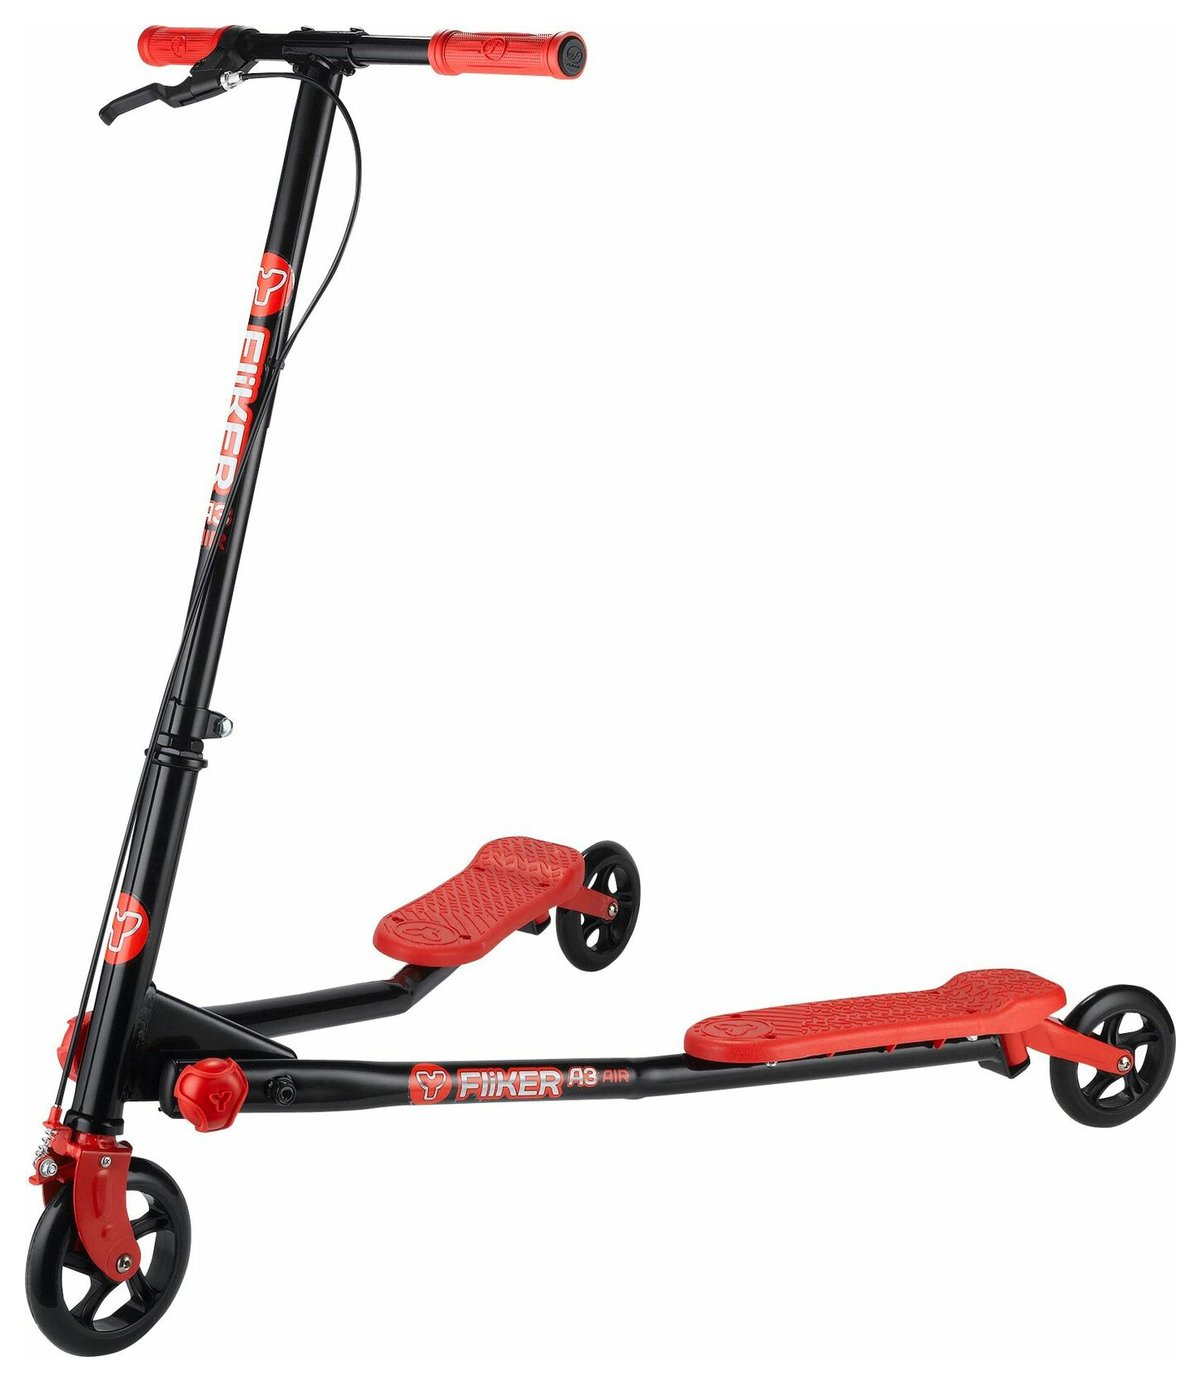 Yvolution Y Fliker A3 Air Scooter - Red